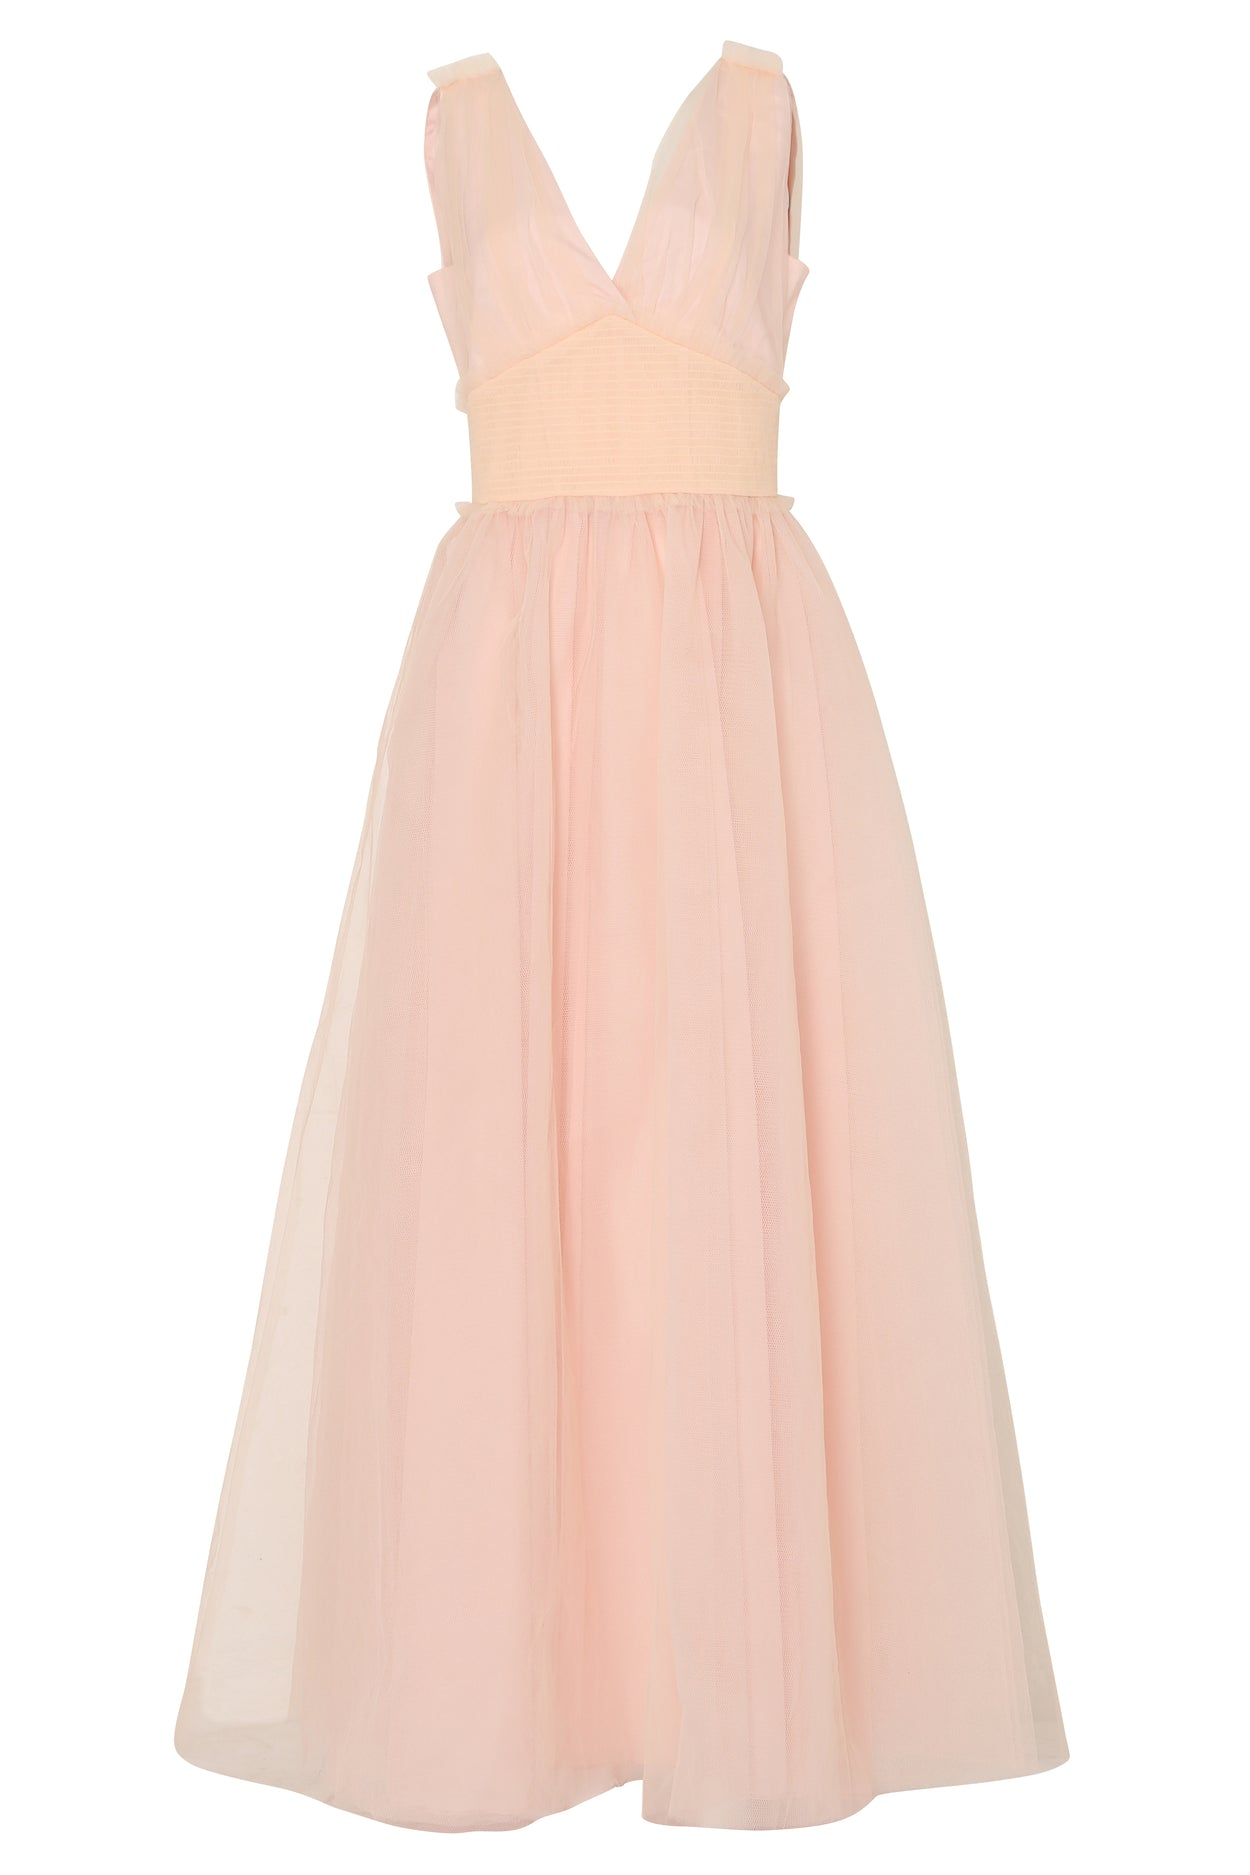 Soft Peach Tulle Full Length Gown